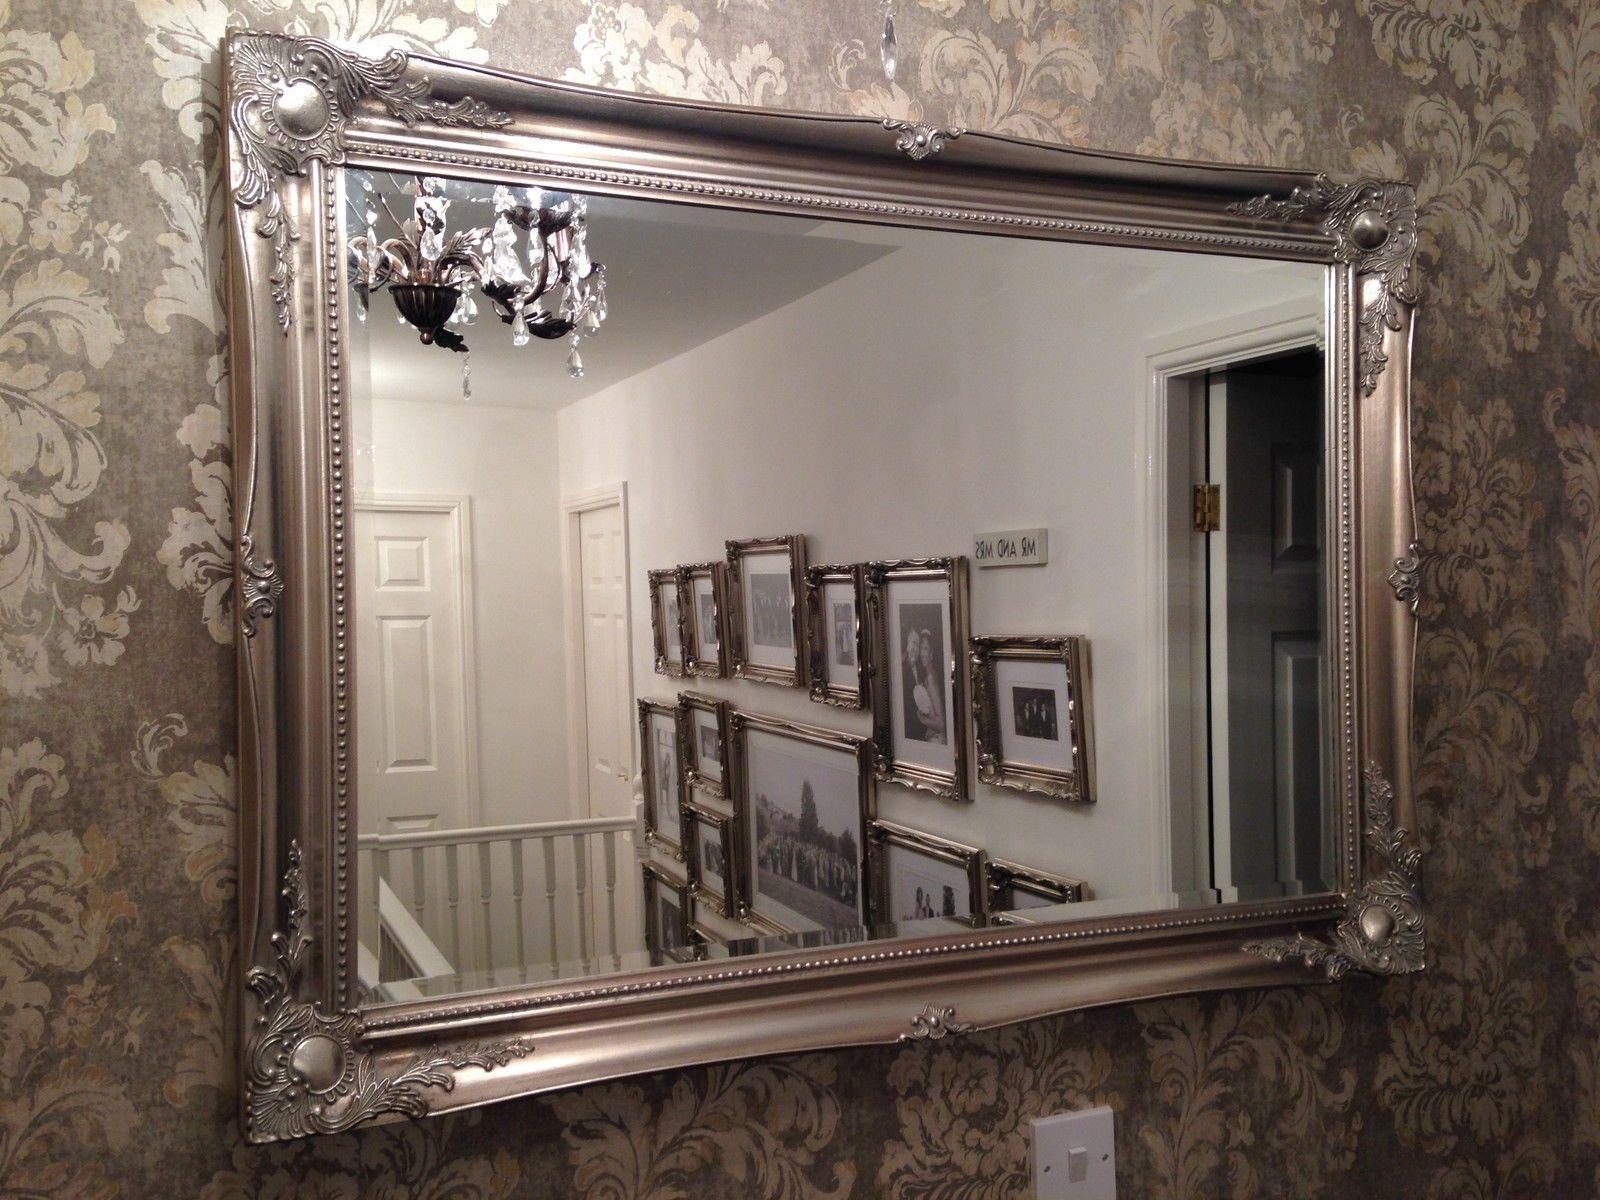 Marvelous Mirror Wall Art Vintage Old Fashioned Wall Mirrors Regarding Antique Round Mirrors For Walls (Image 13 of 20)